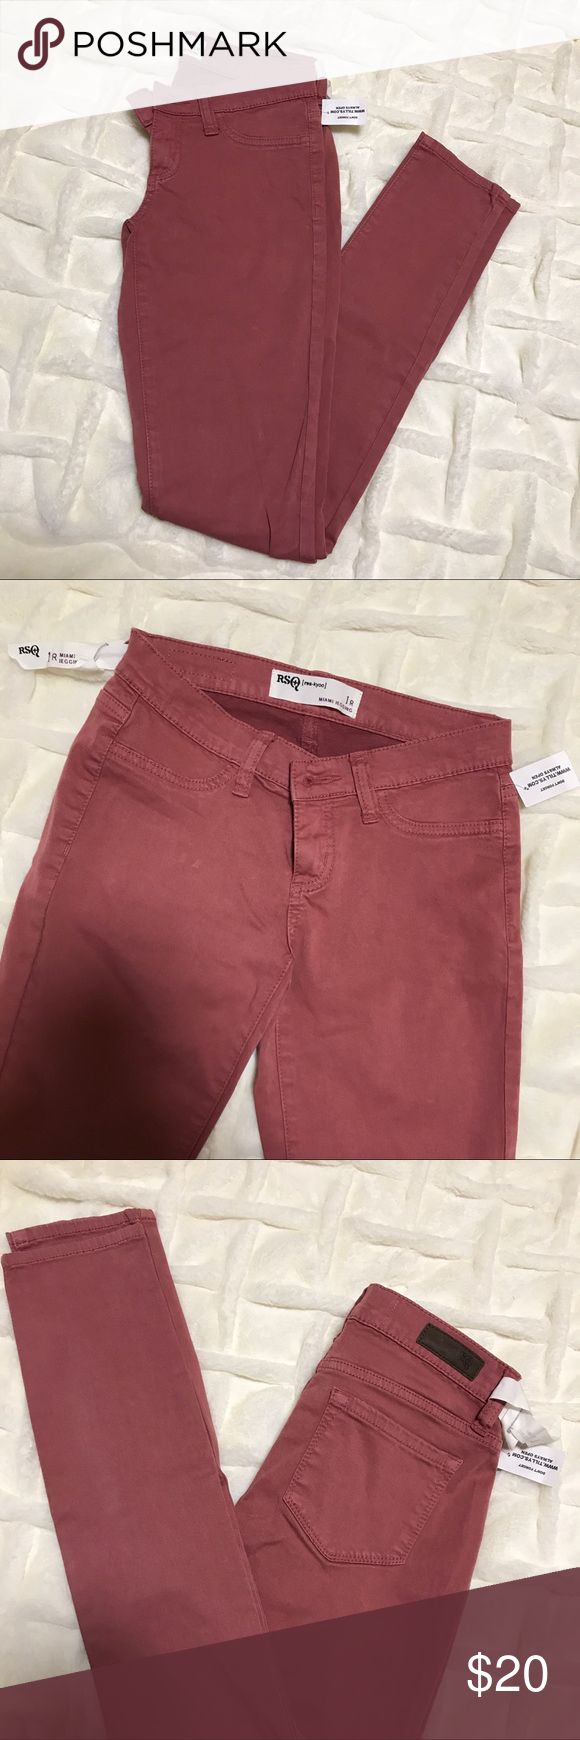 Tilly's RSQ Miami jeggings Tilly's RSQ Miami jeggings in color 🌹ROSE🌹 ✨never worn, no trades, tag still attached✨ Levi's Jeans Skinny